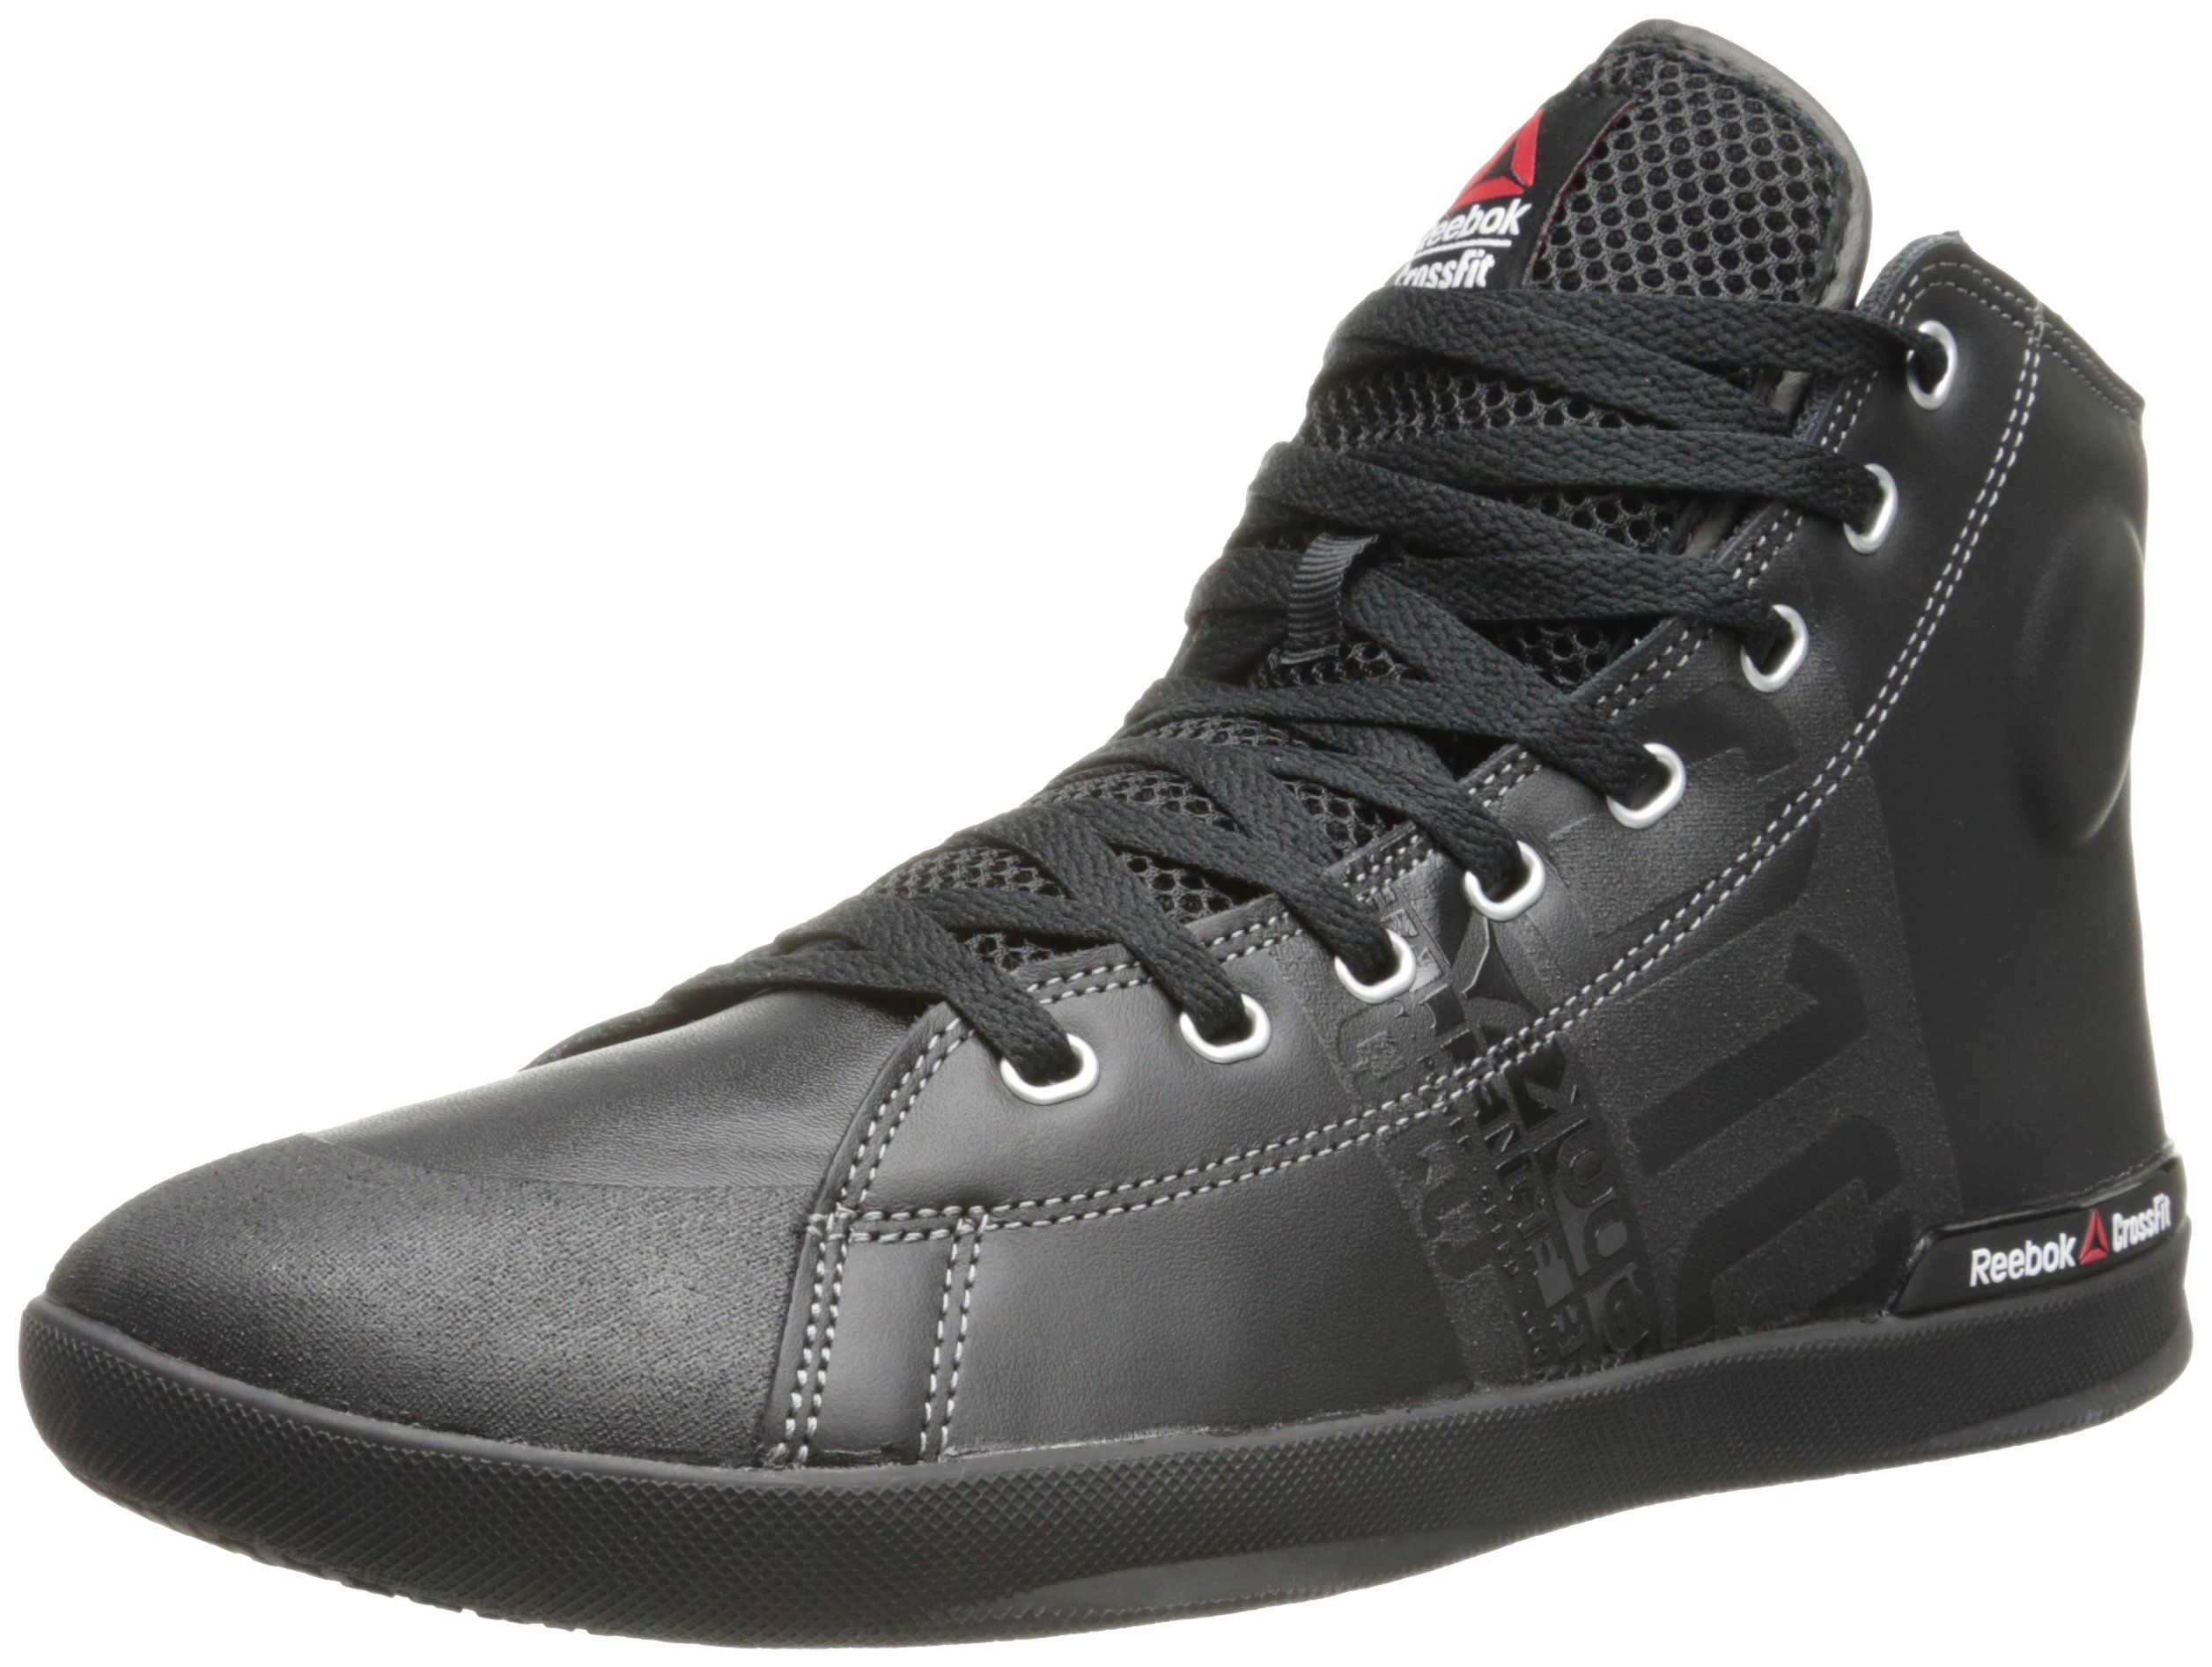 b15ca29266f312 Amazon.com  Reebok Men s Crossfit Lite TR Training Shoe  Shoes ...